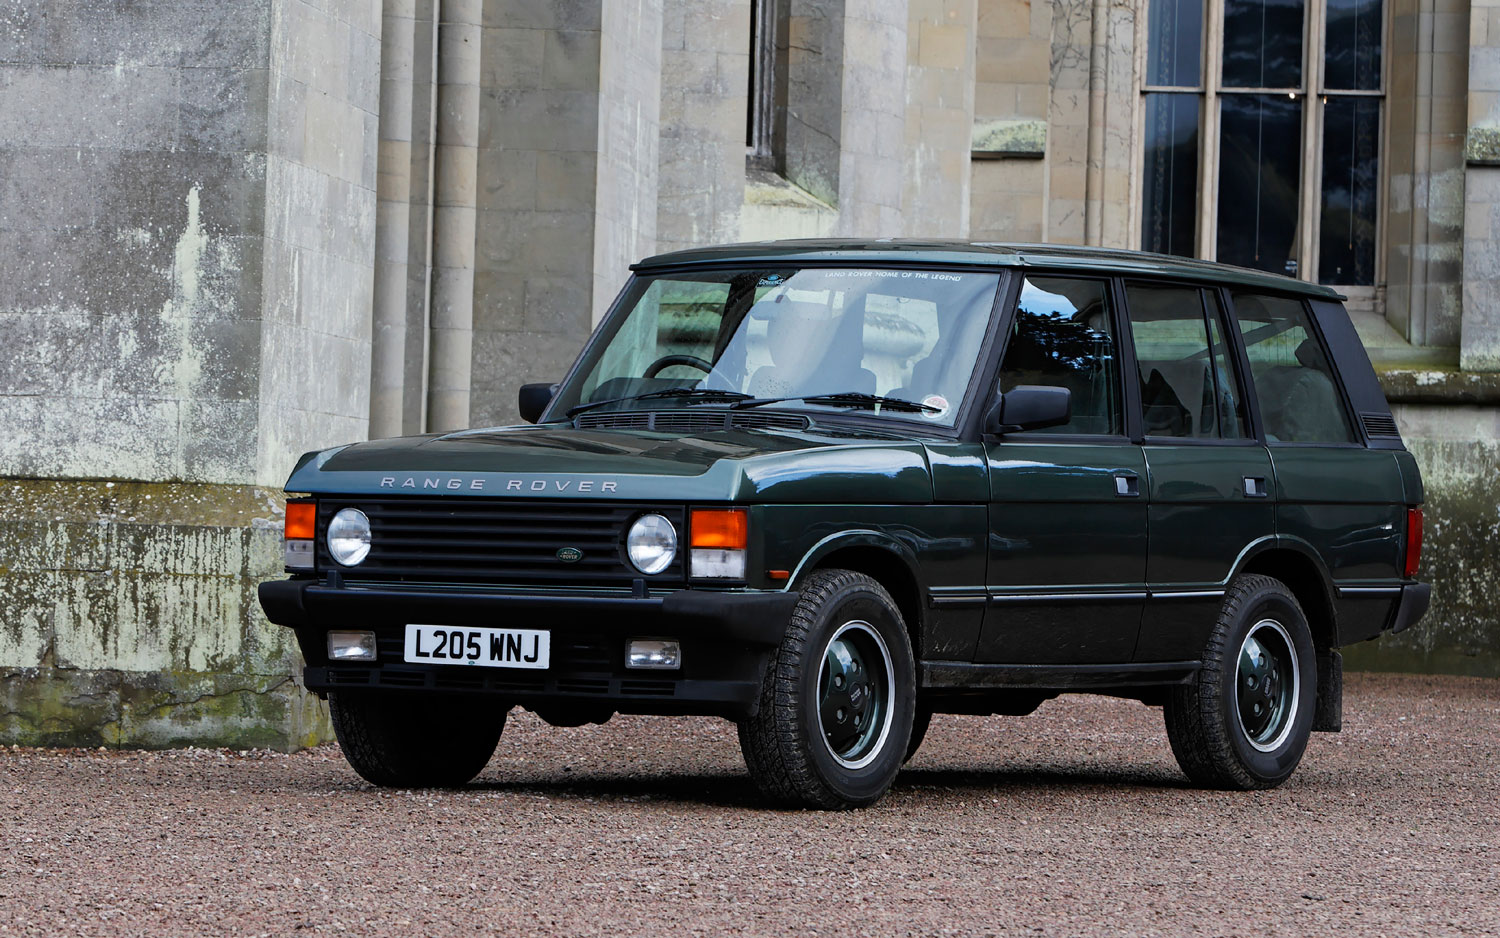 1995 Land Rover Range Rover Classic Front Three Quarter